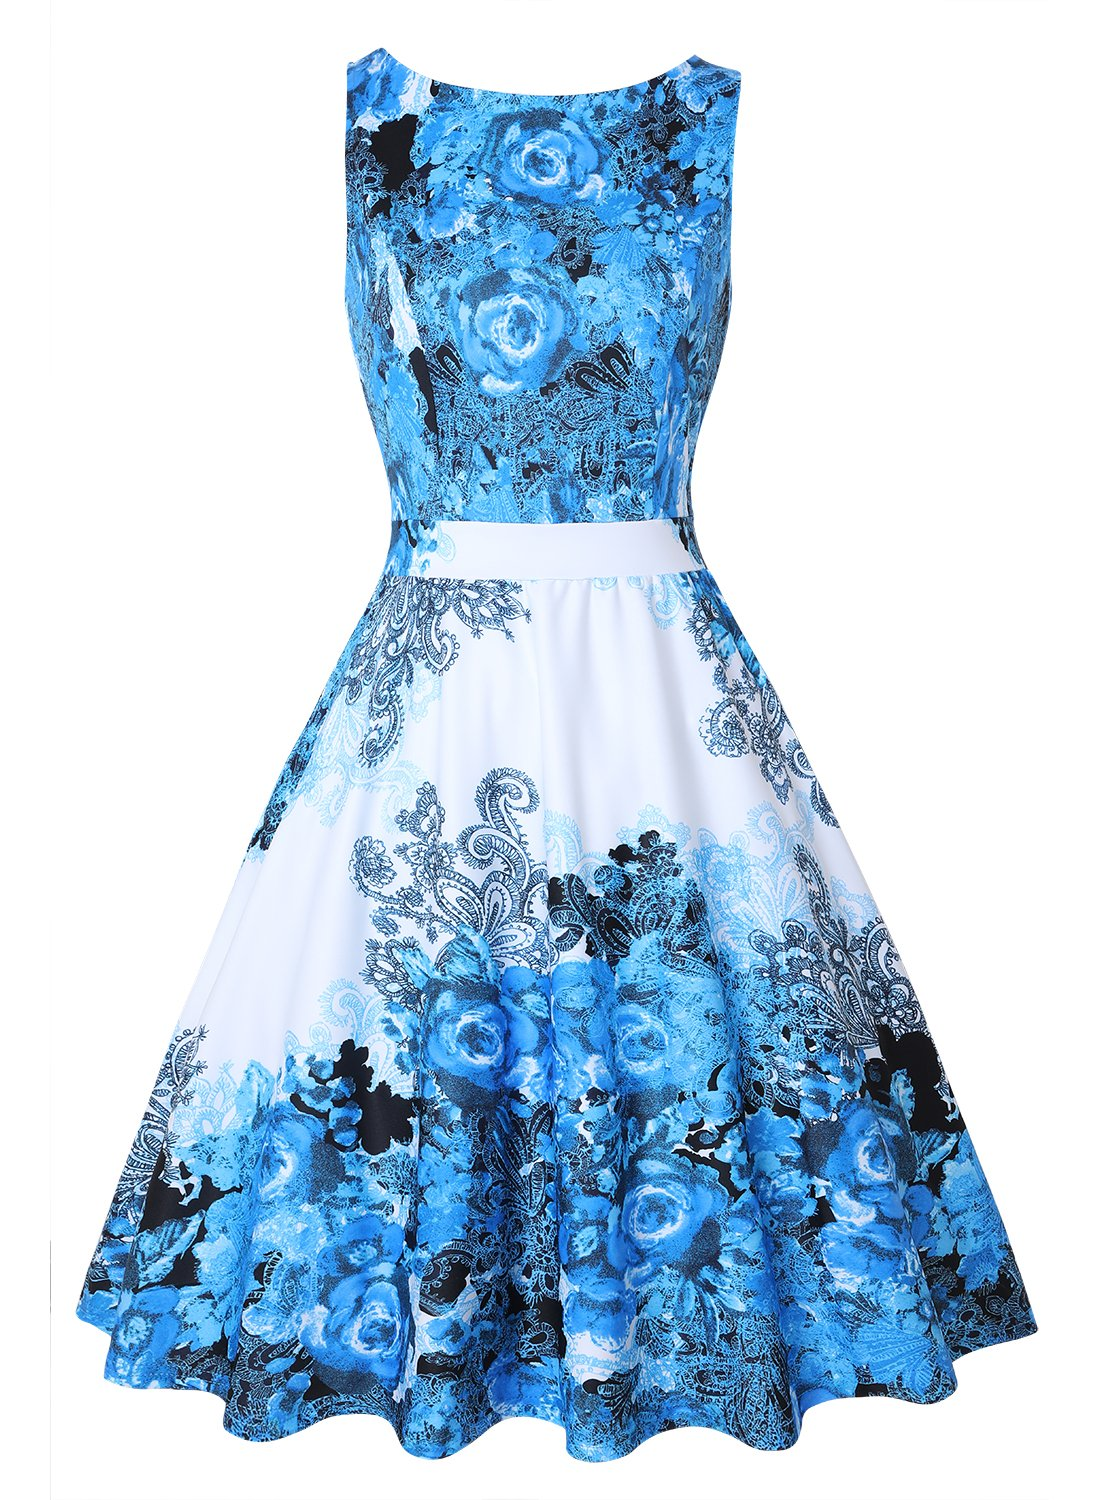 Available at Amazon: OWIN Women's Floral 1950s Vintage Swing Cocktail Party Dress Sleeveless